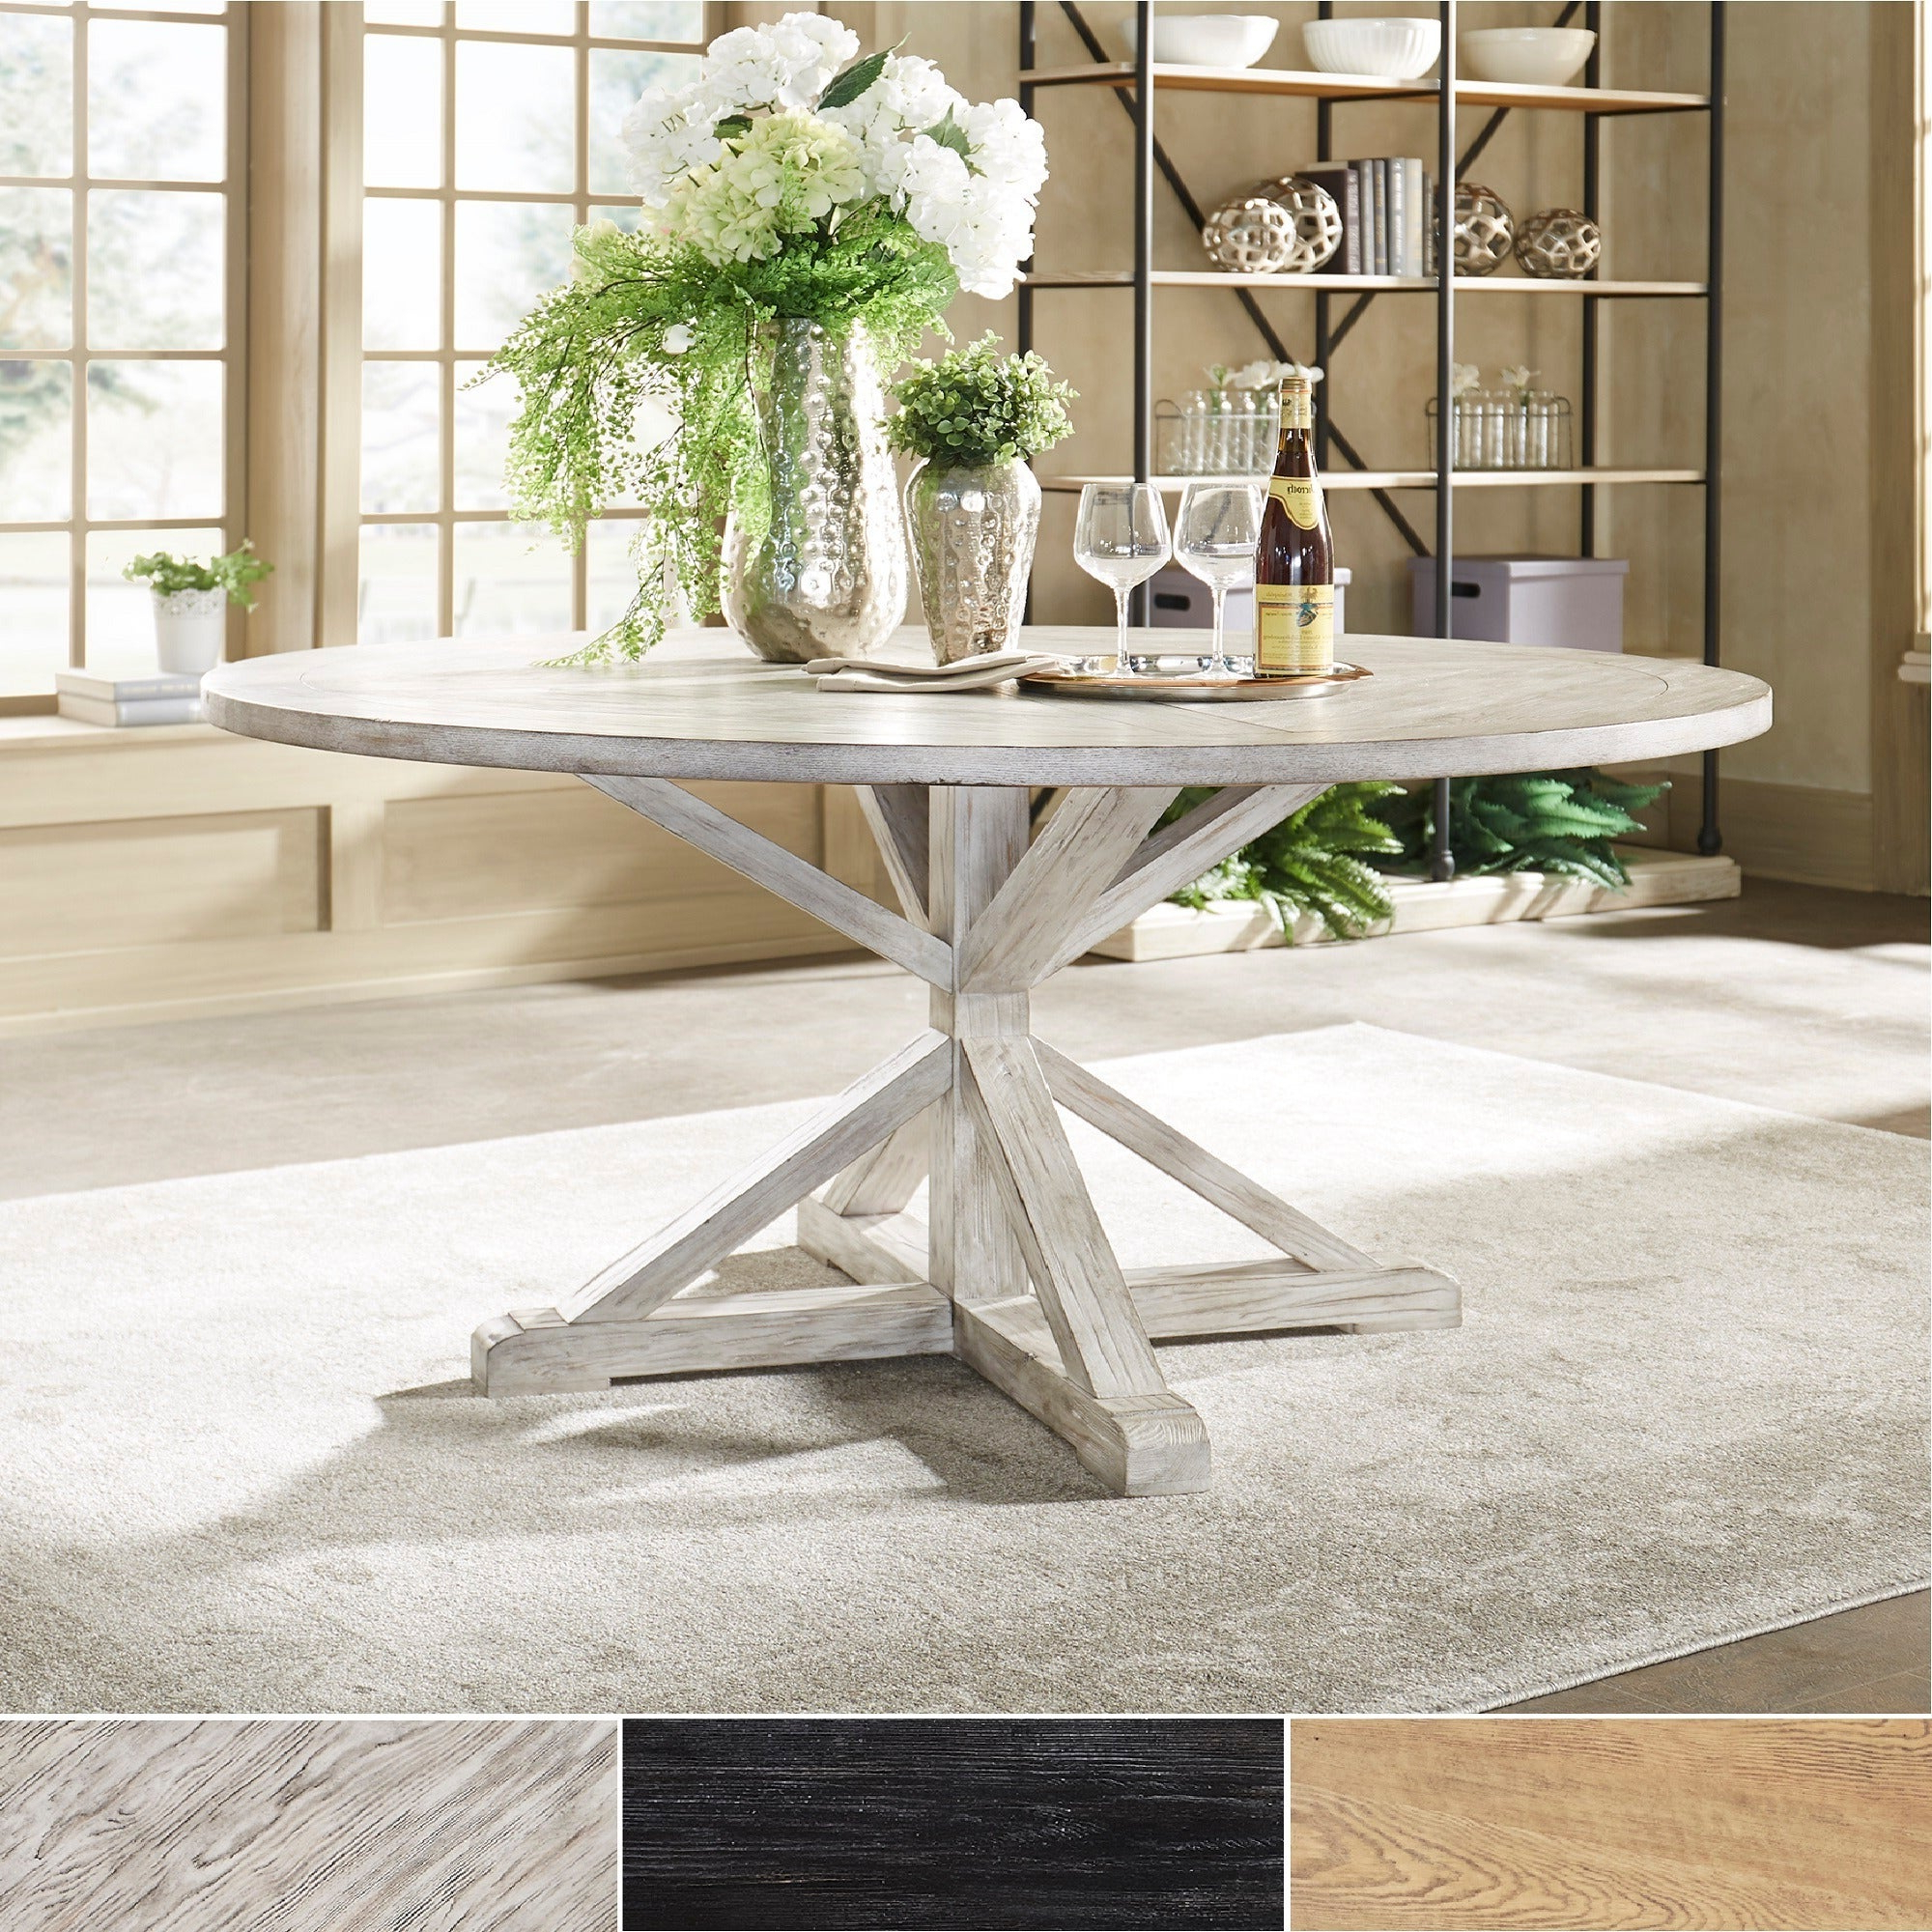 Benchwright Rustic X-Base Round Pine Wood Dining Tableinspire Q Artisan throughout Well-known Rustic Mahogany Benchwright Pedestal Extending Dining Tables